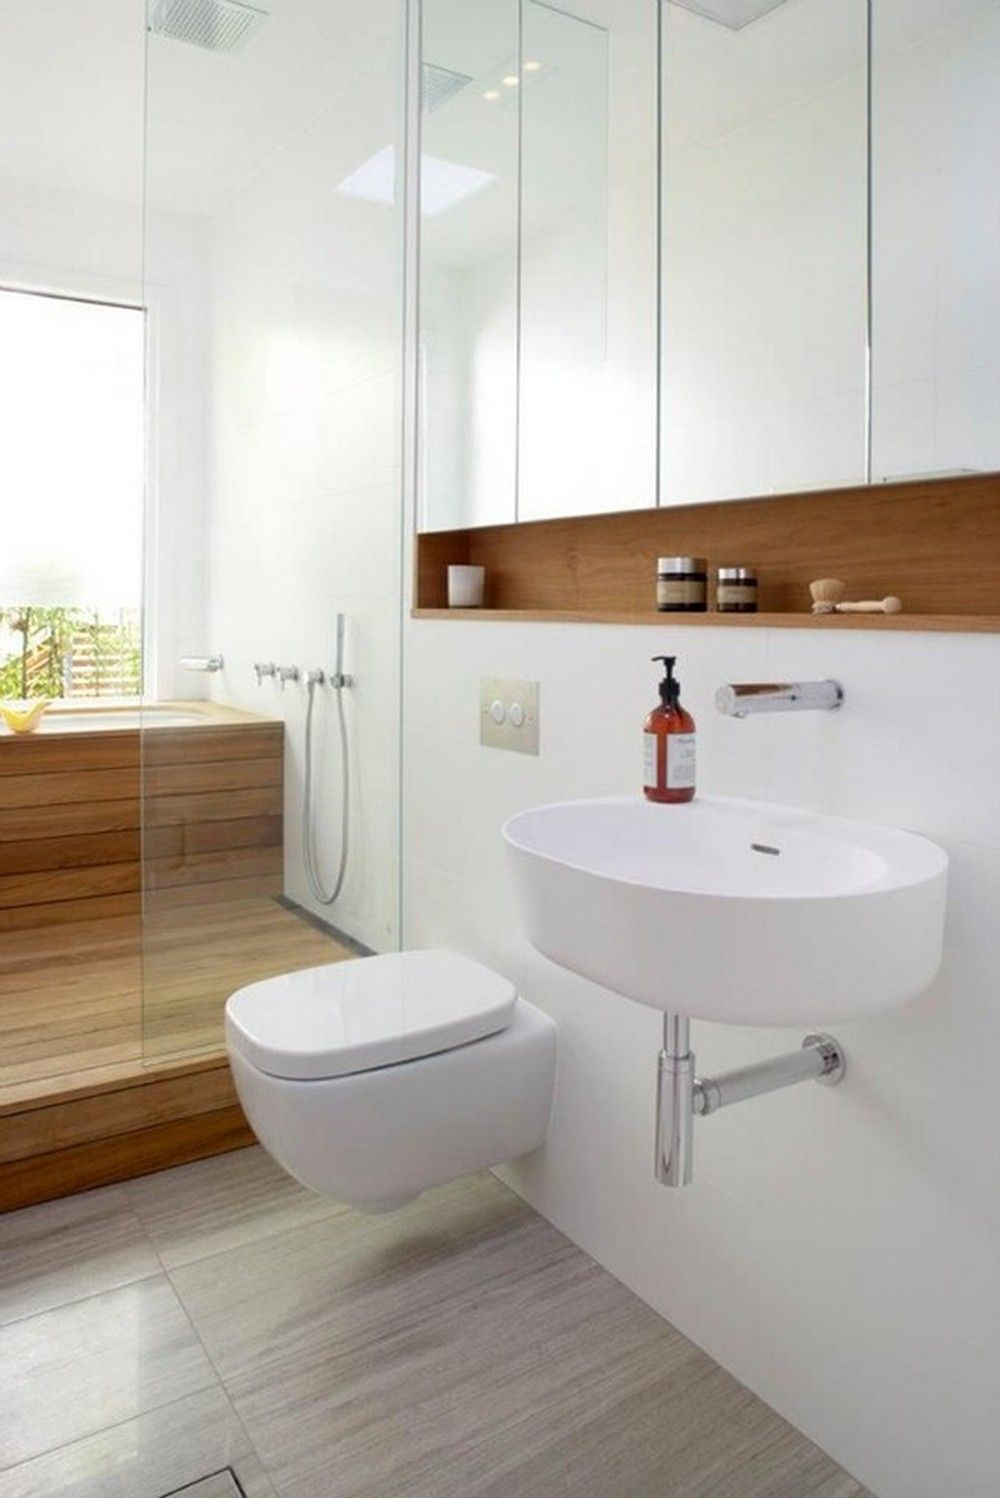 106 Clever Small Bathroom Decorating Ideas | Small bathroom